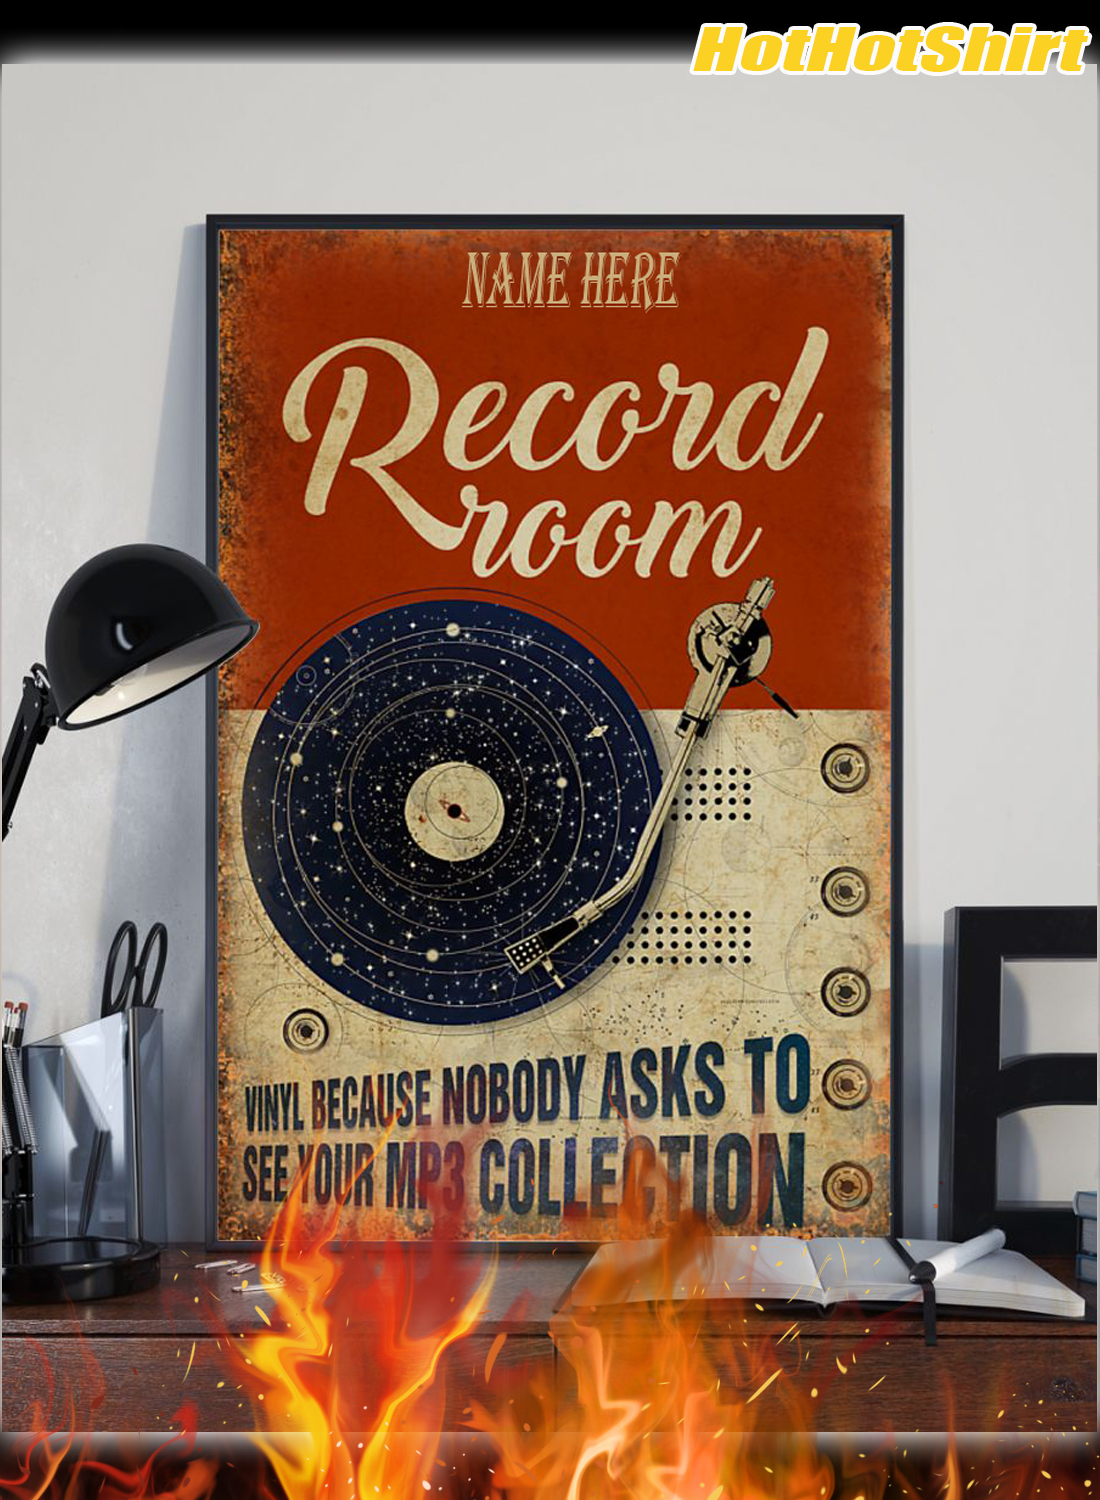 Personalized Custom Name Record Room Because Nobody Asks To See Your Mp3 Collection Poster 2